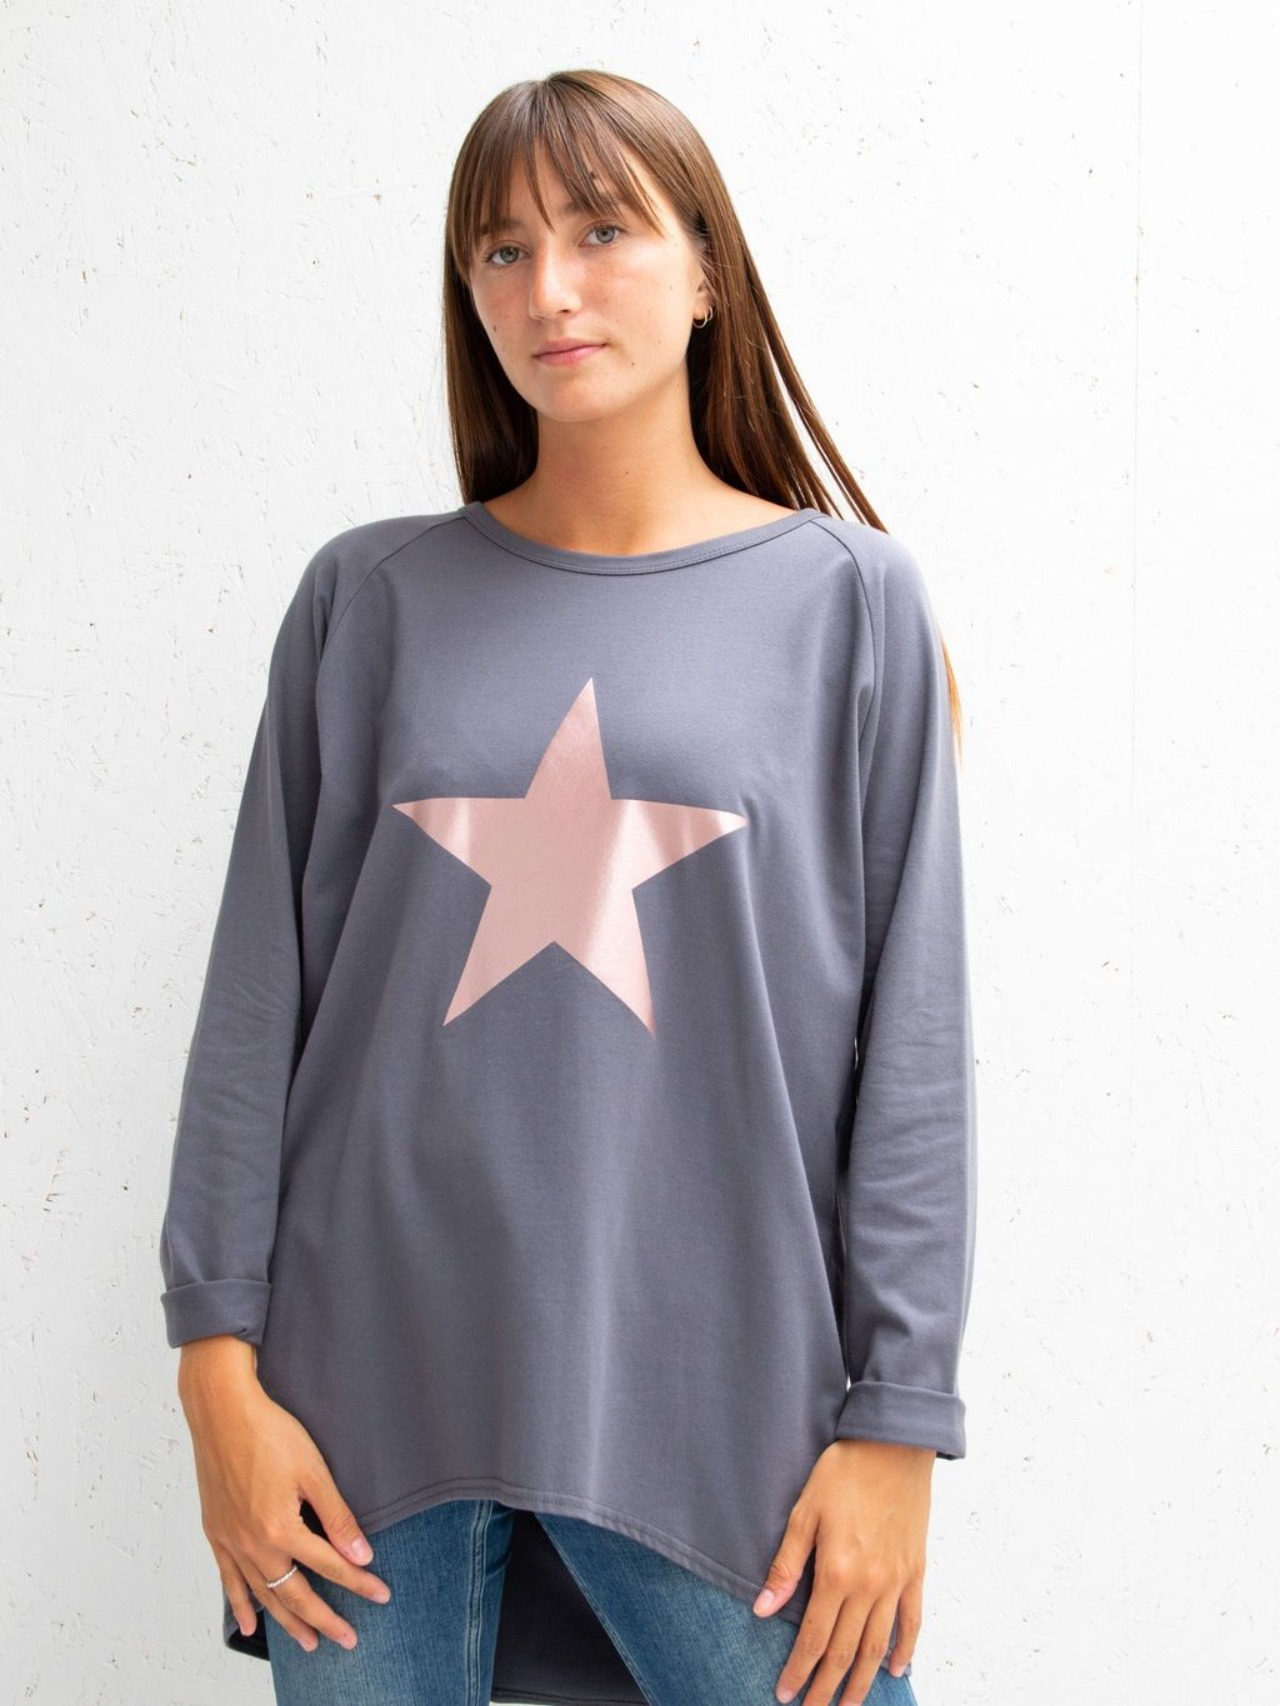 Chalk Robyn charcoal with rose gold star top